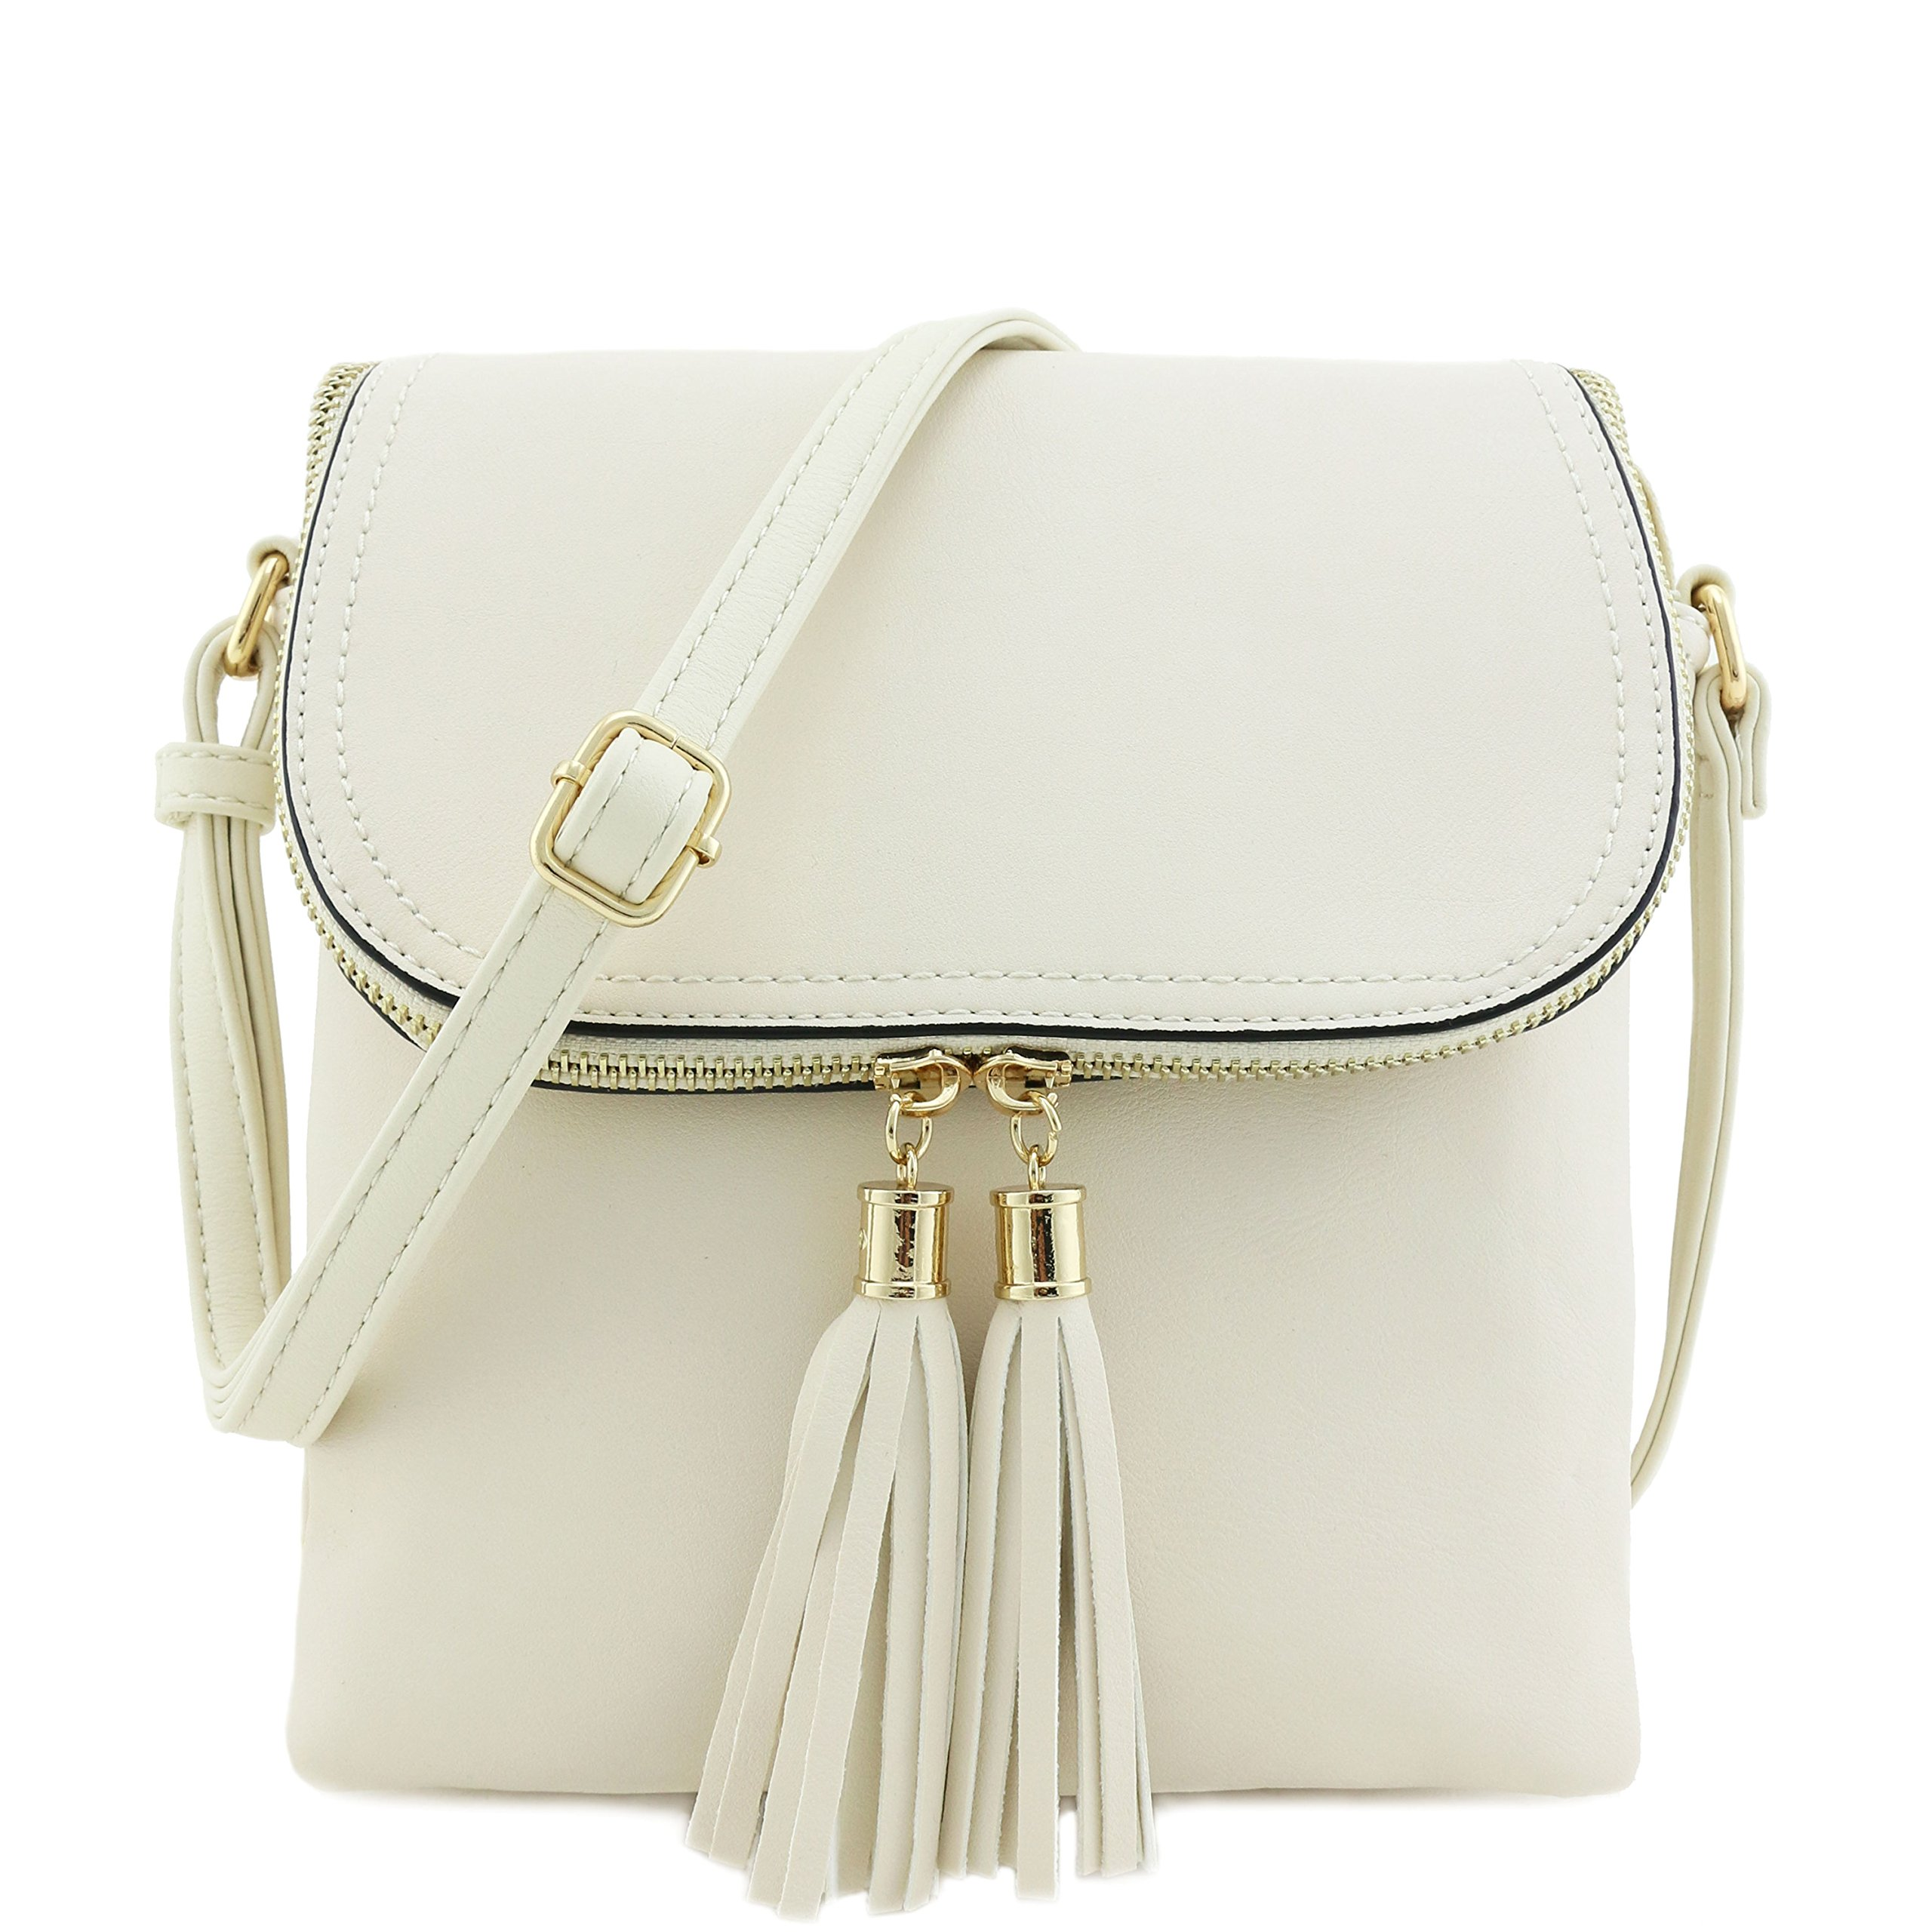 Flap Top Double Compartment Crossbody Bag with Tassel Accent Ivory